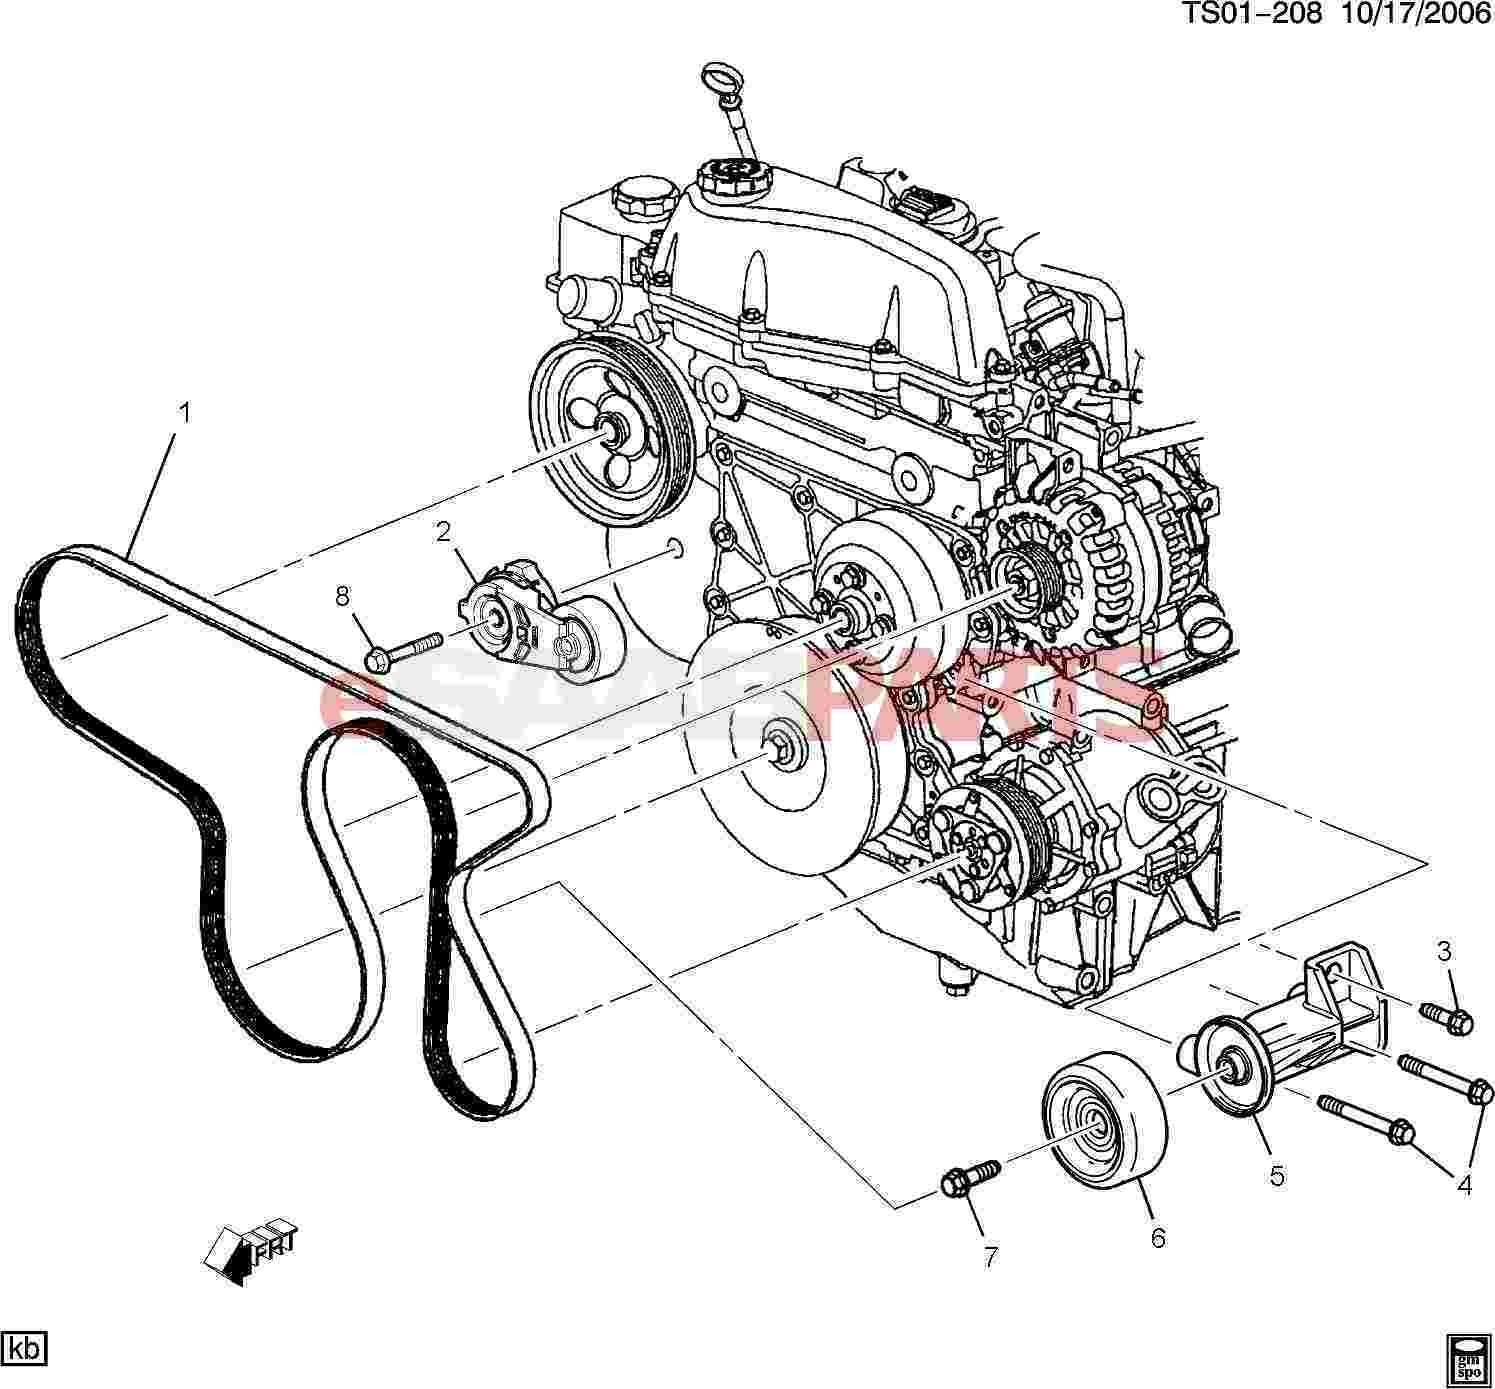 saab 9 5 trailer wiring diagram smart wiring diagrams u2022 rh emgsolutions co Belt Diagram 2003 Saab 2003 saab 9-3 engine diagram